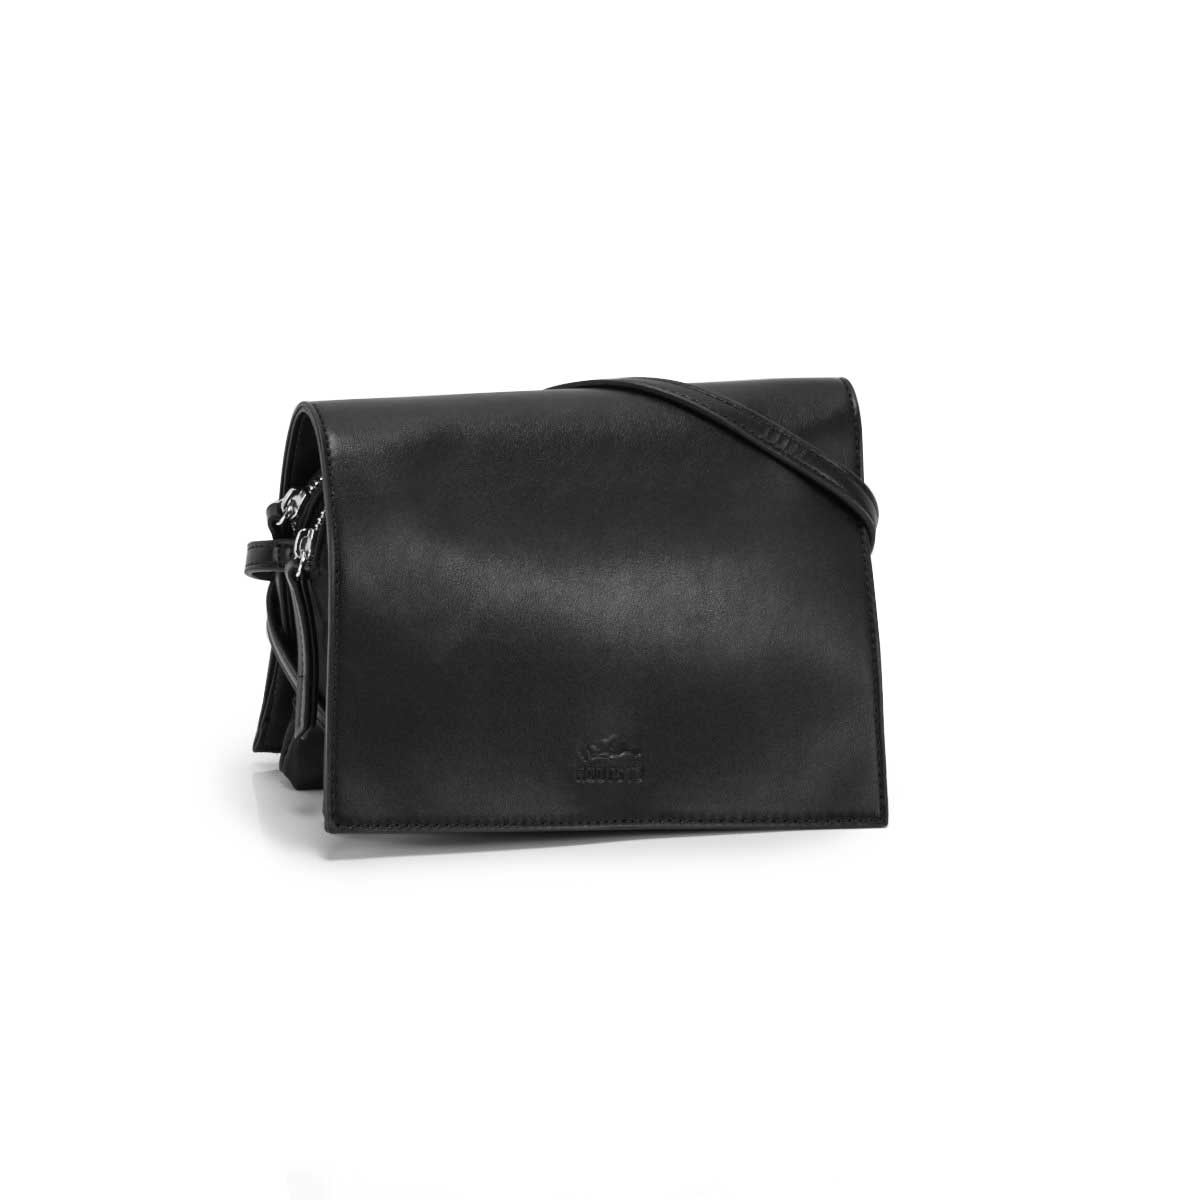 Lds Roots73 black full flap crossbody